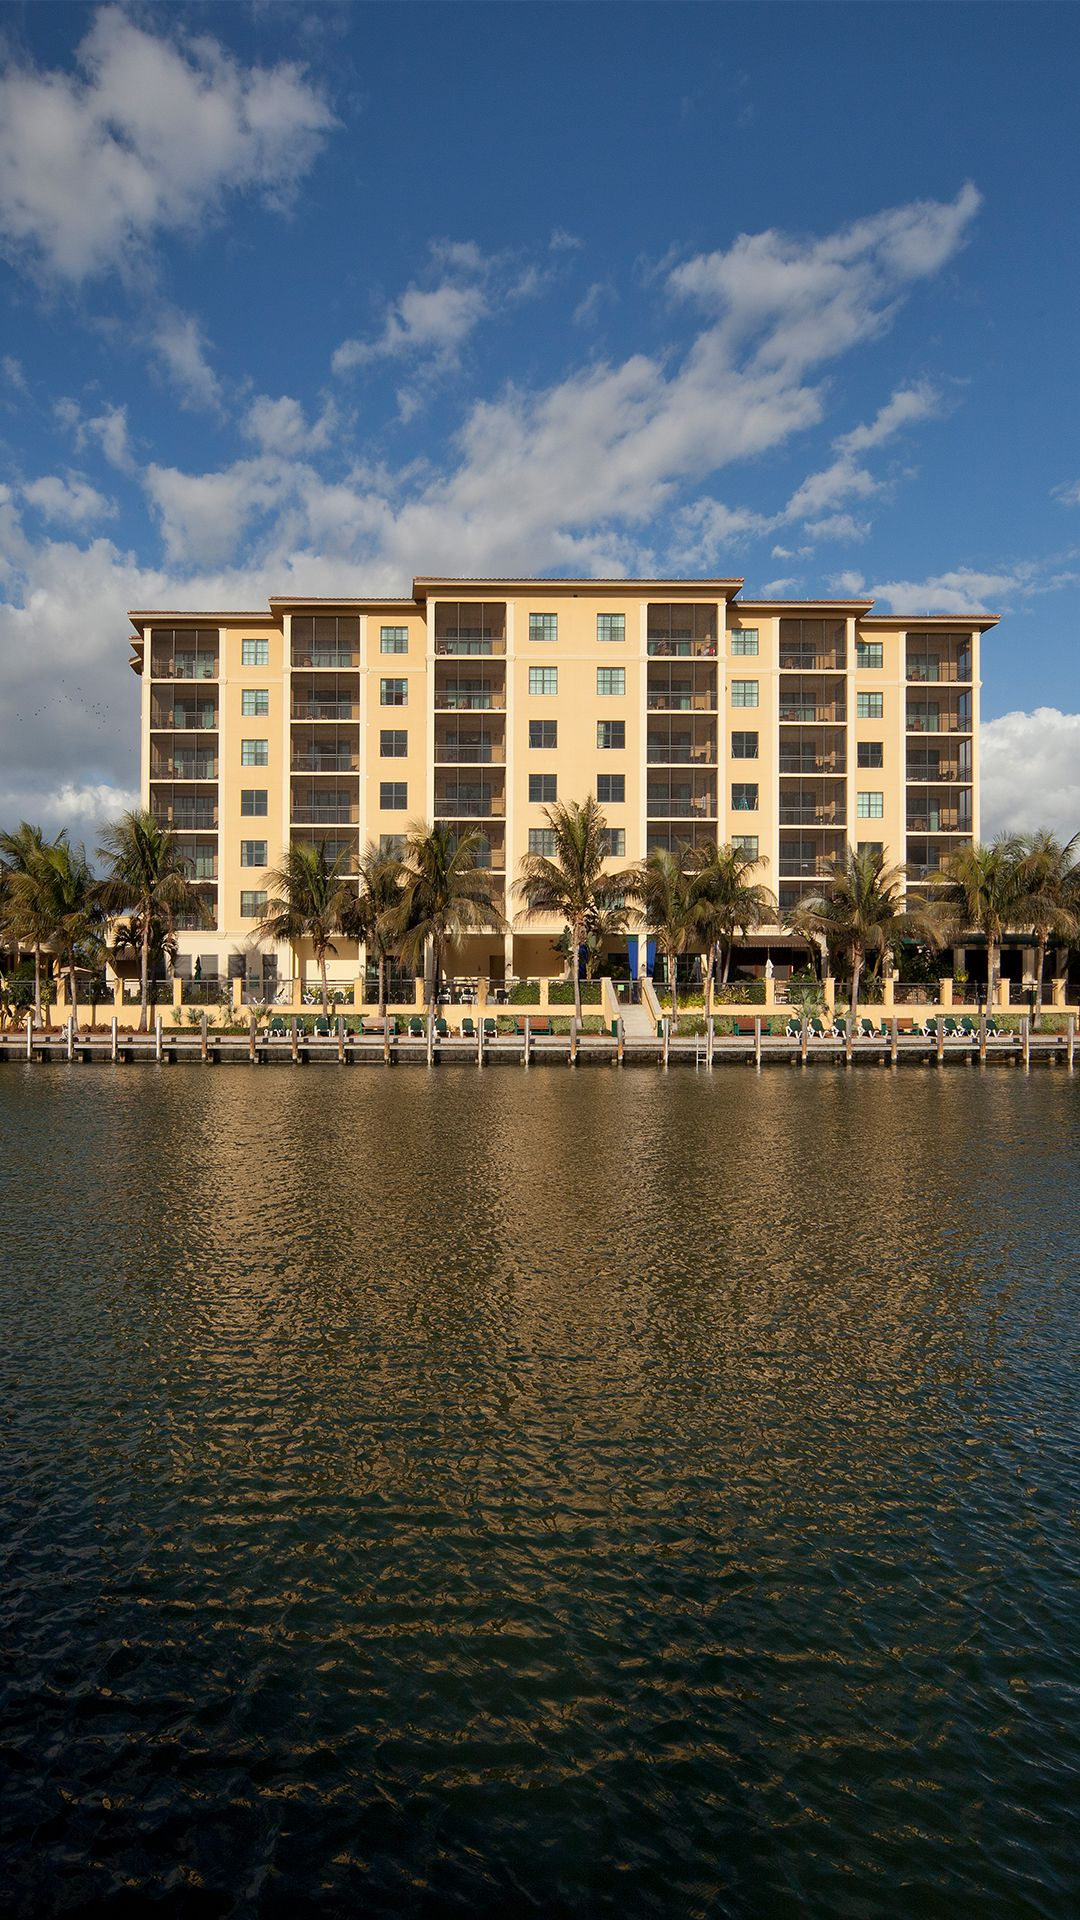 Marco S Relaxing Florida Vacation Offerings Include Miles Of Beautiful Beaches Famous For The Bounty Of Tropic Florida Vacation Holiday Inn Island Destinations